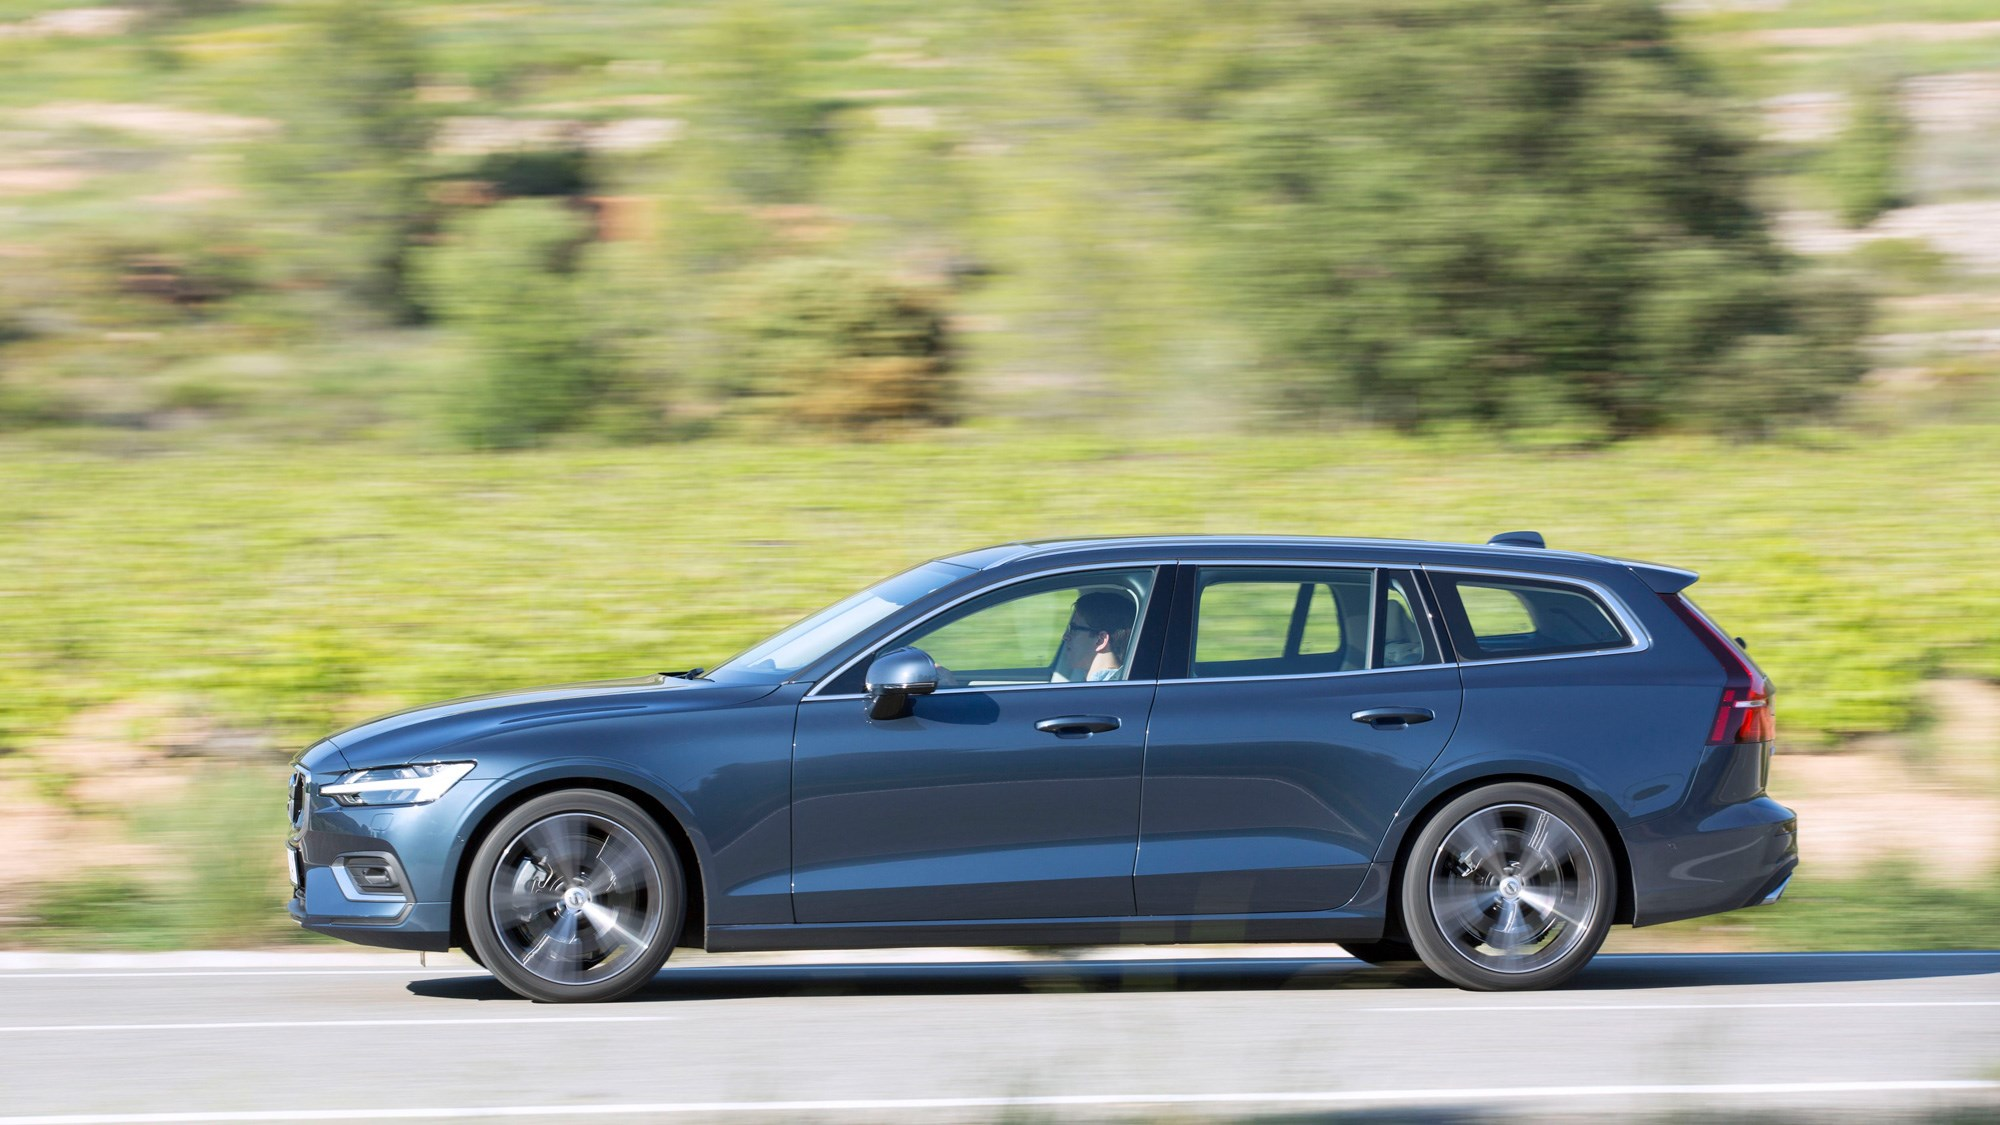 New Volvo V60 (2018) review: we drive the D3 diesel | CAR Magazine